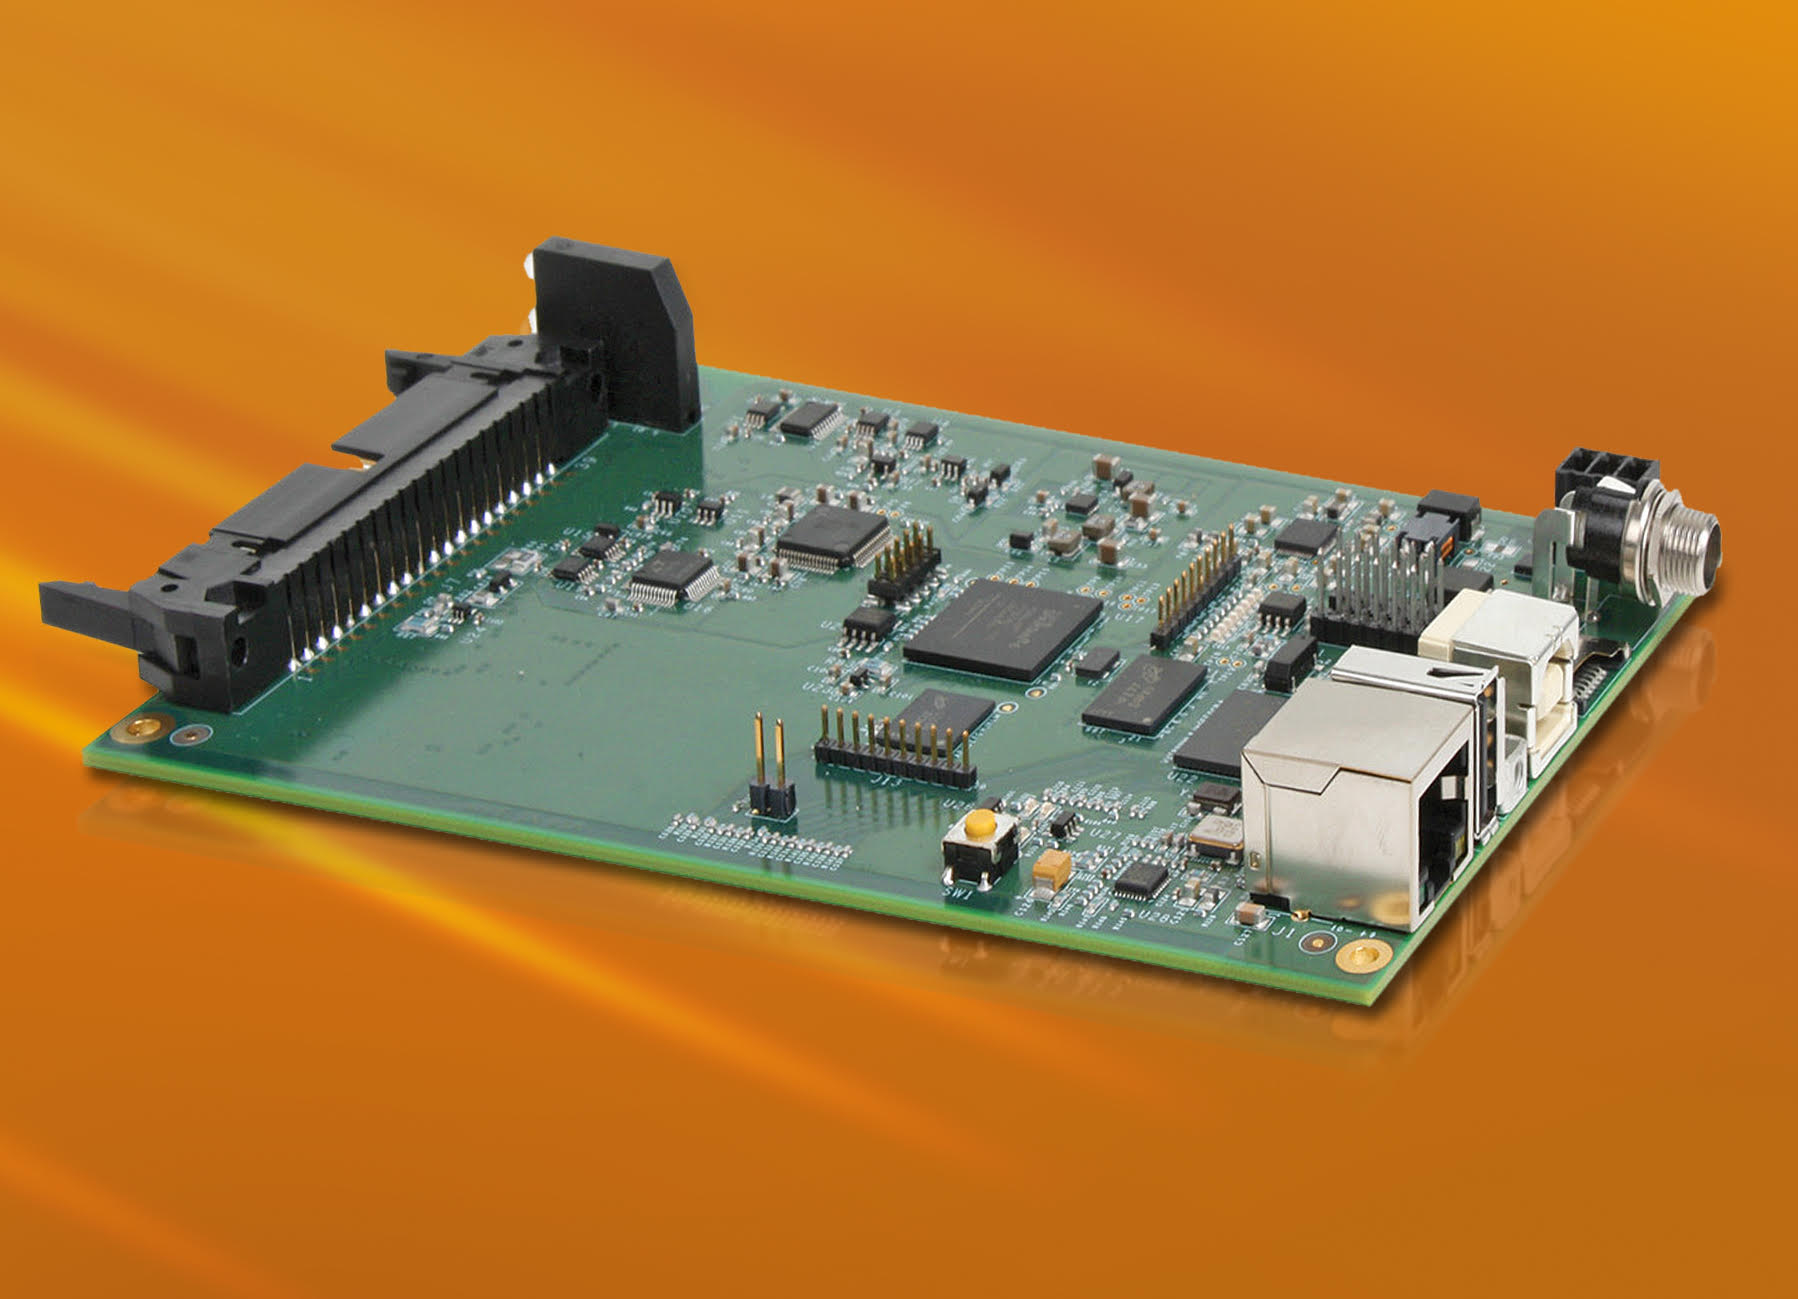 Embedded data acquisition module with ARM processor